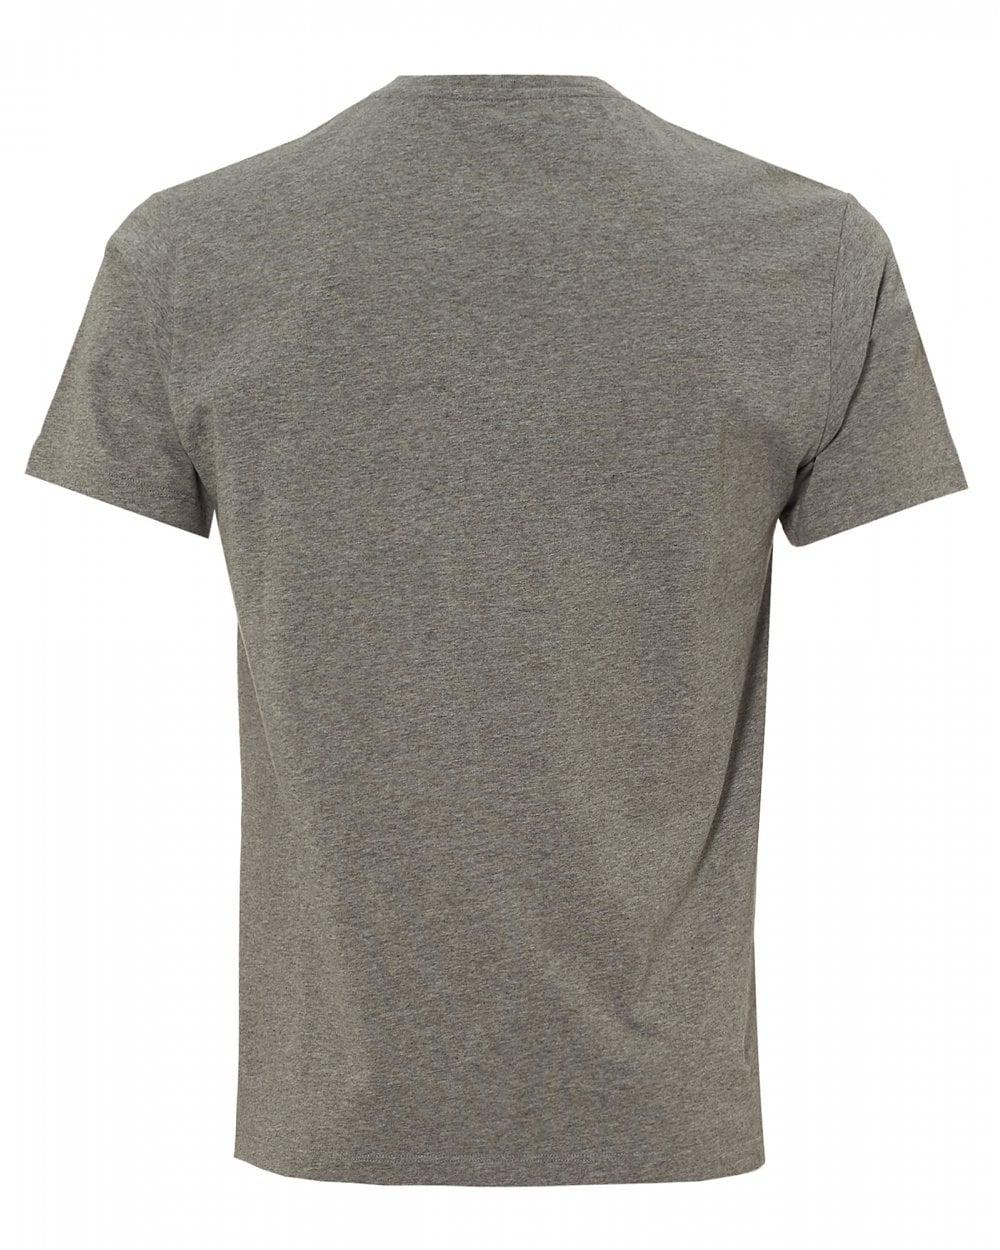 e7105b04 Lyst - KENZO Tiger T-shirt, Crew Neck Dove Grey Tee in Gray for Men